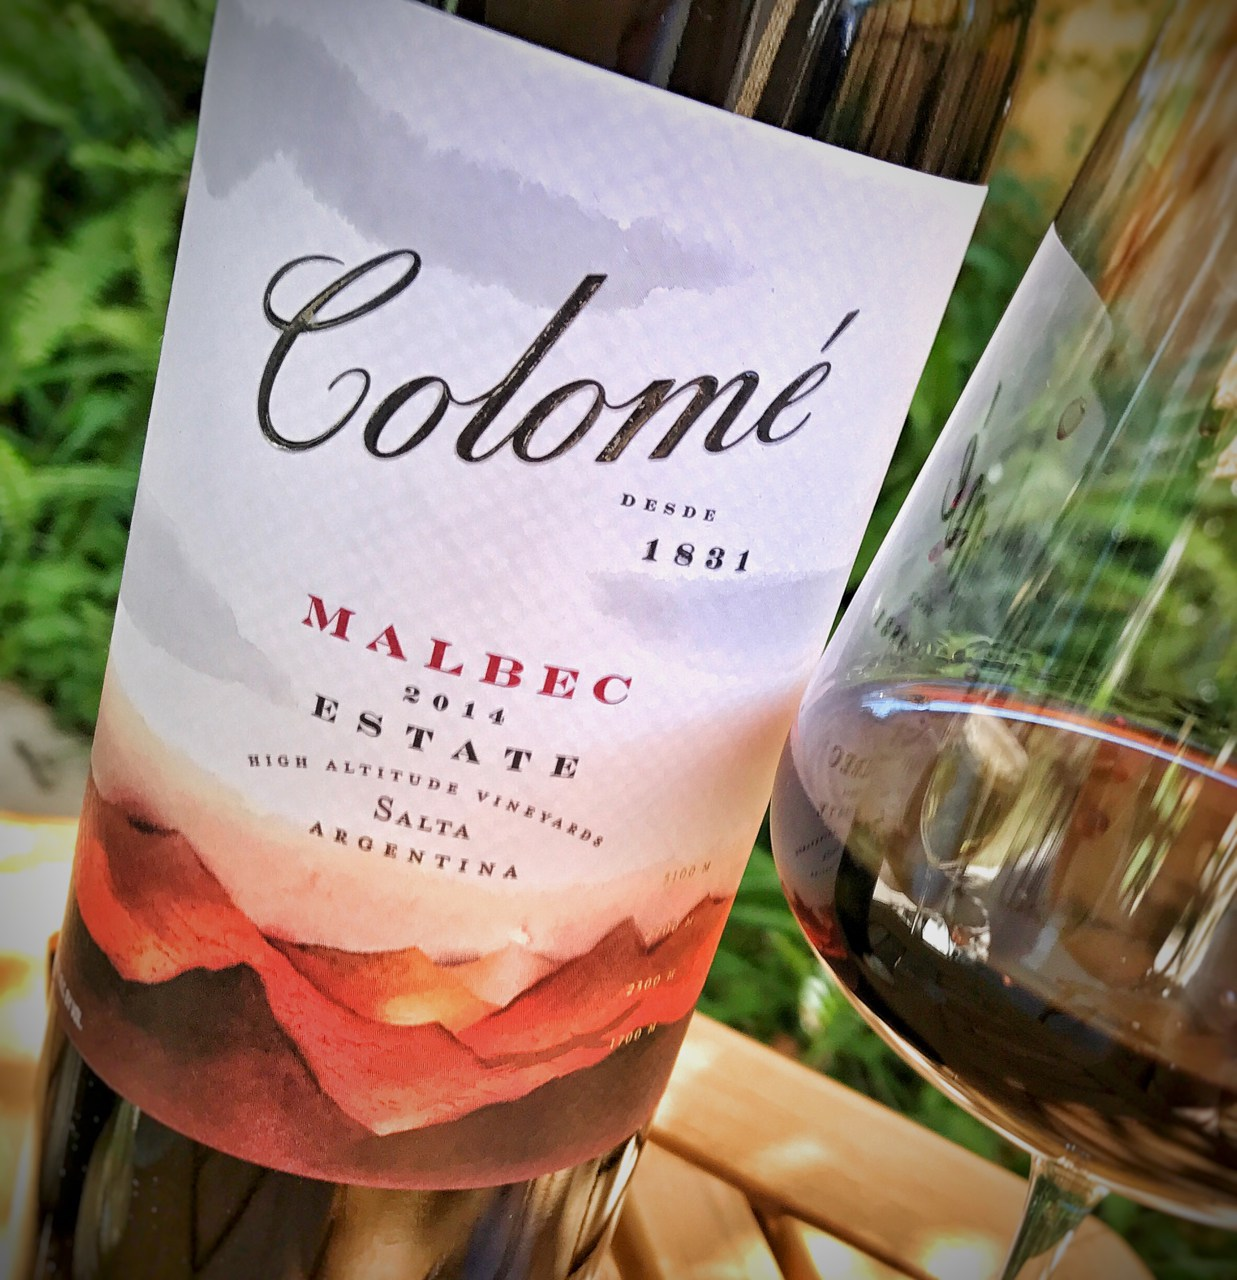 Great value Malbec from Argentina: A buying guide